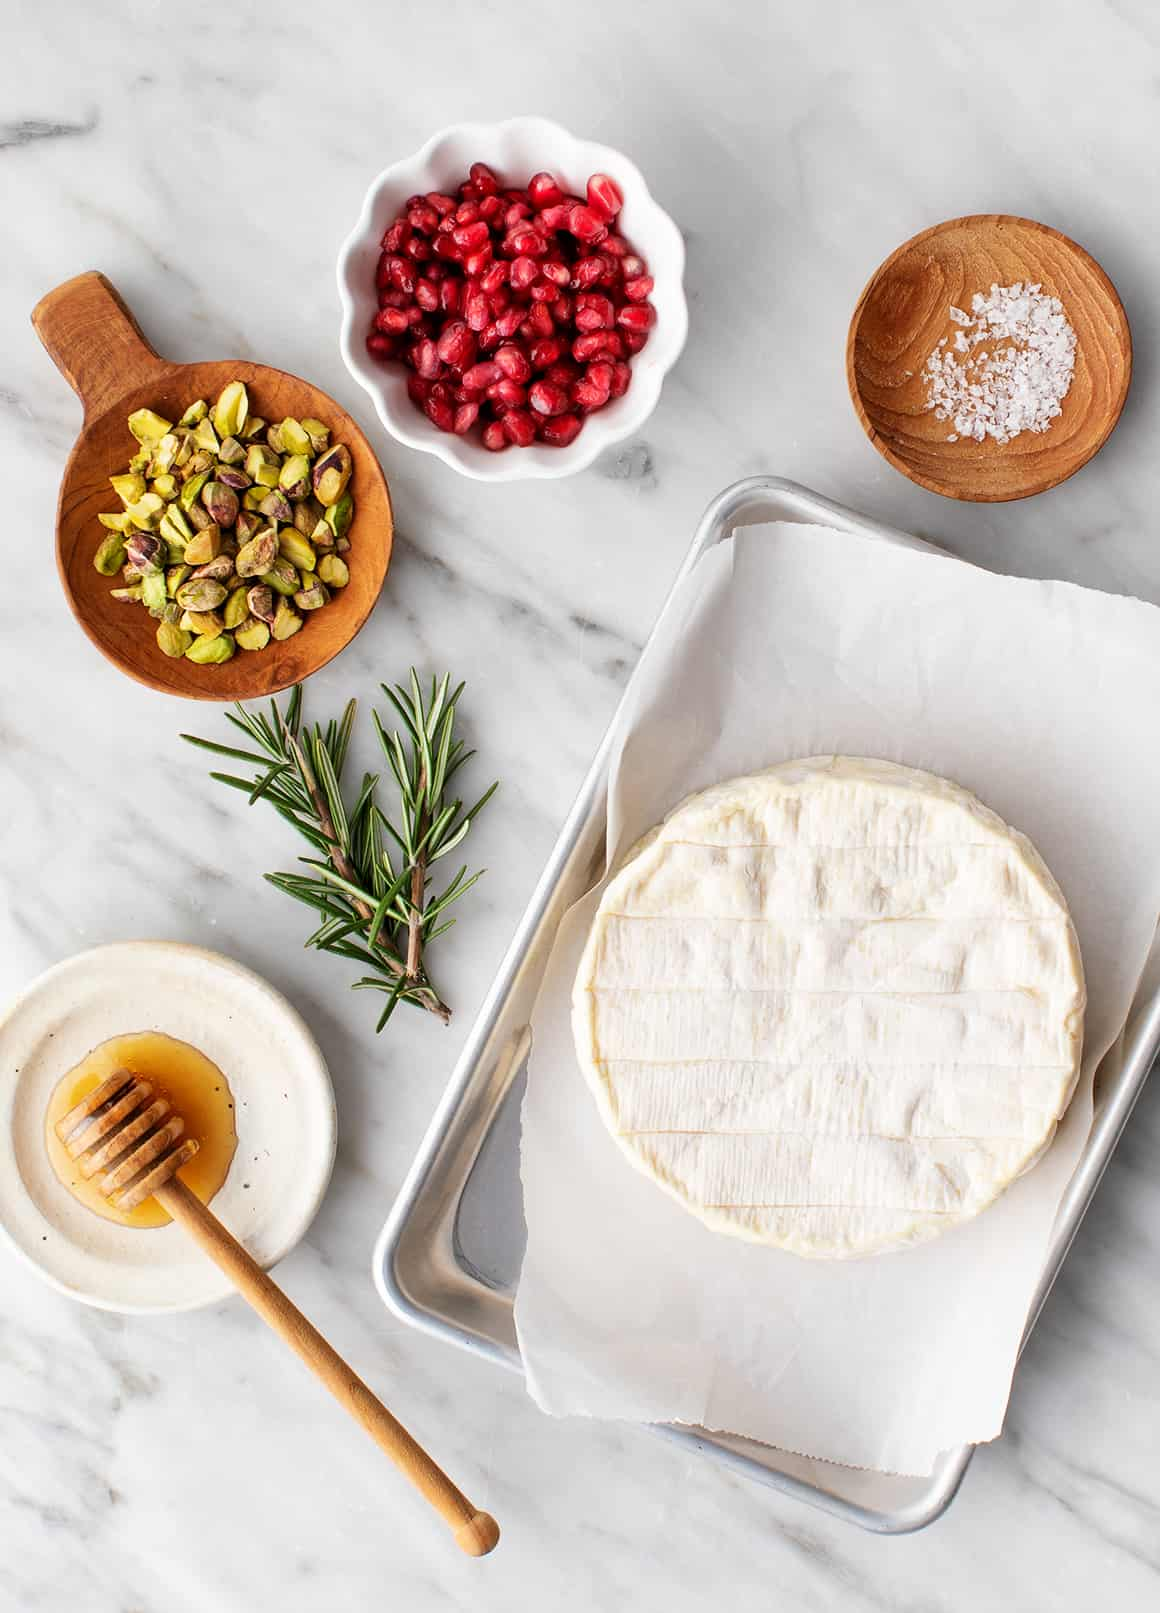 Baked brie recipe ingredients